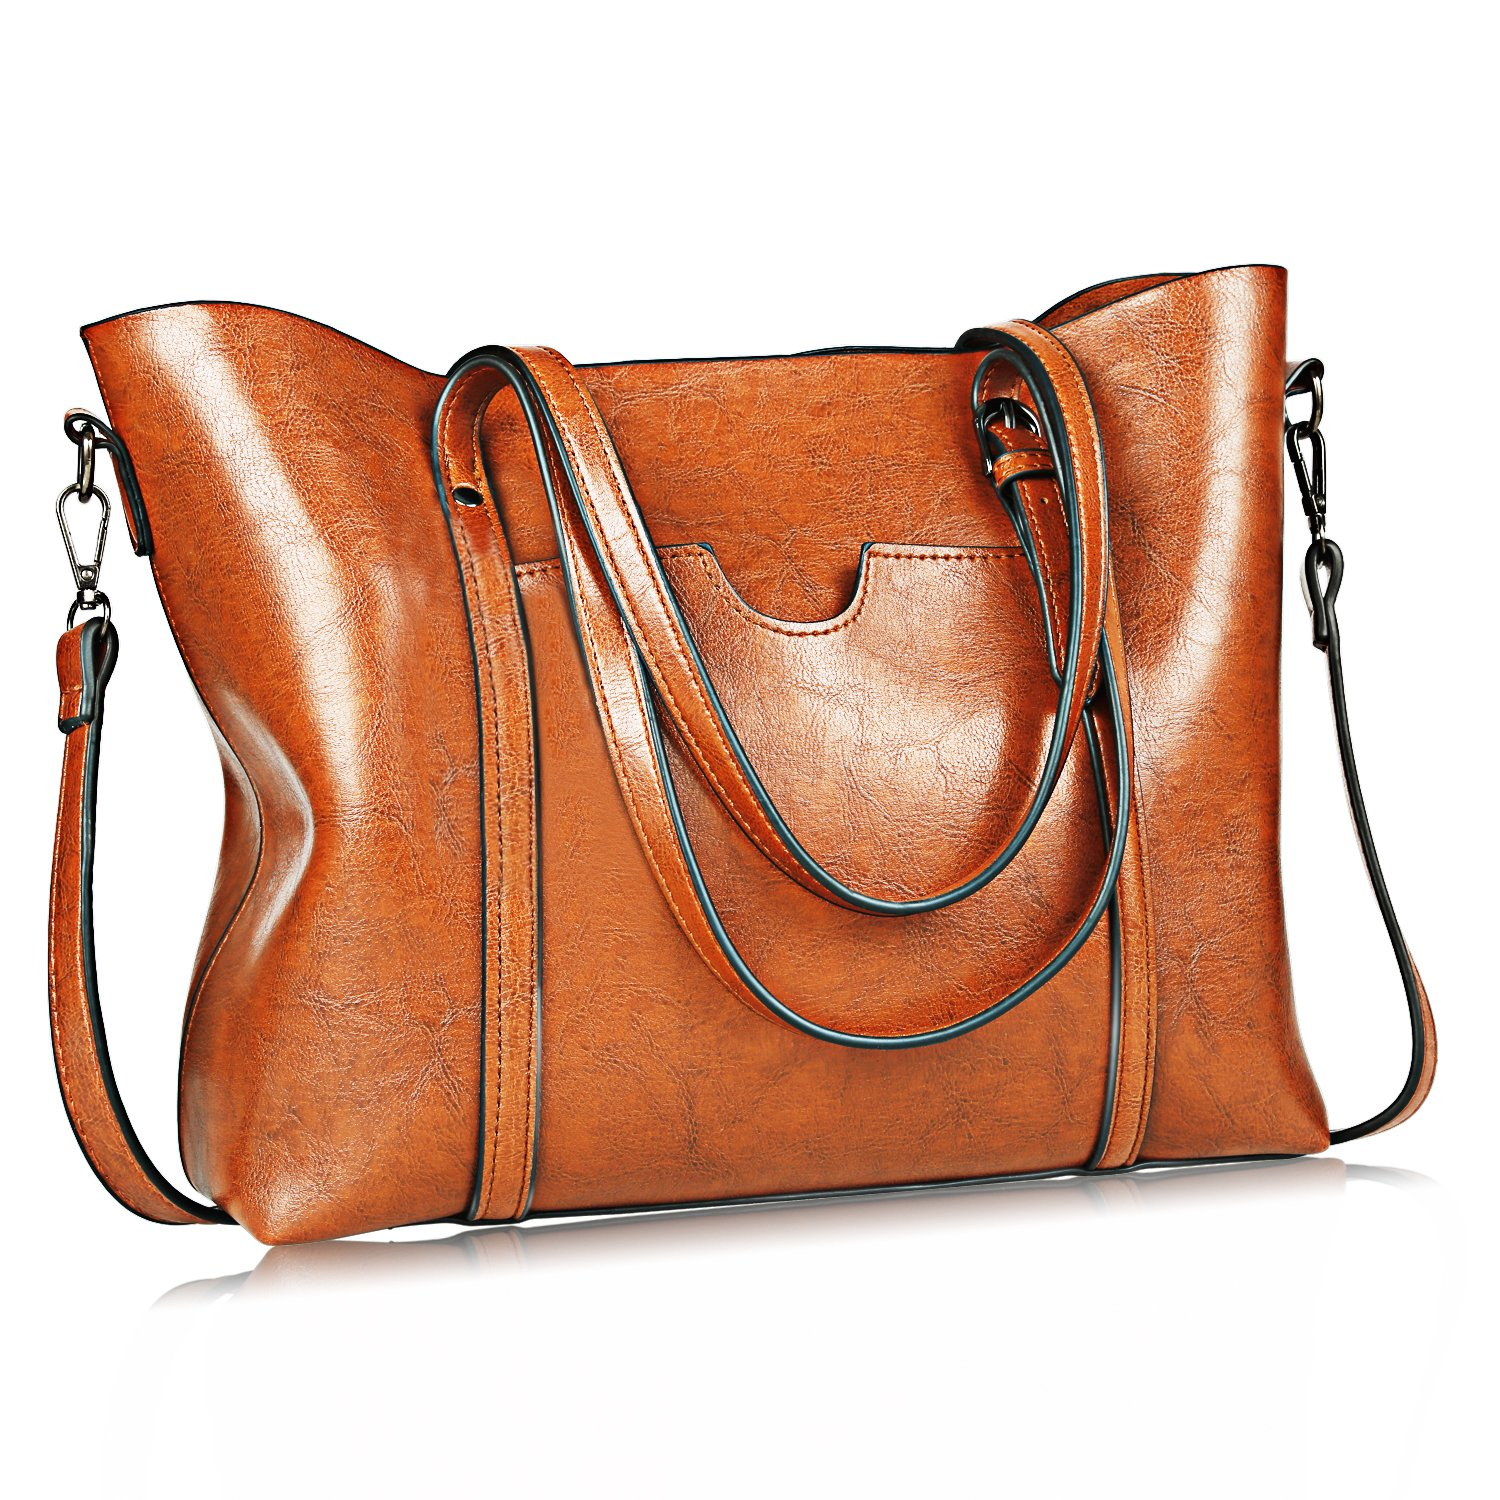 Women Bag Casual Vintage Shoulder Bag Handbags Cross Body Bag Large Capacity Bags Brown JUNDUN